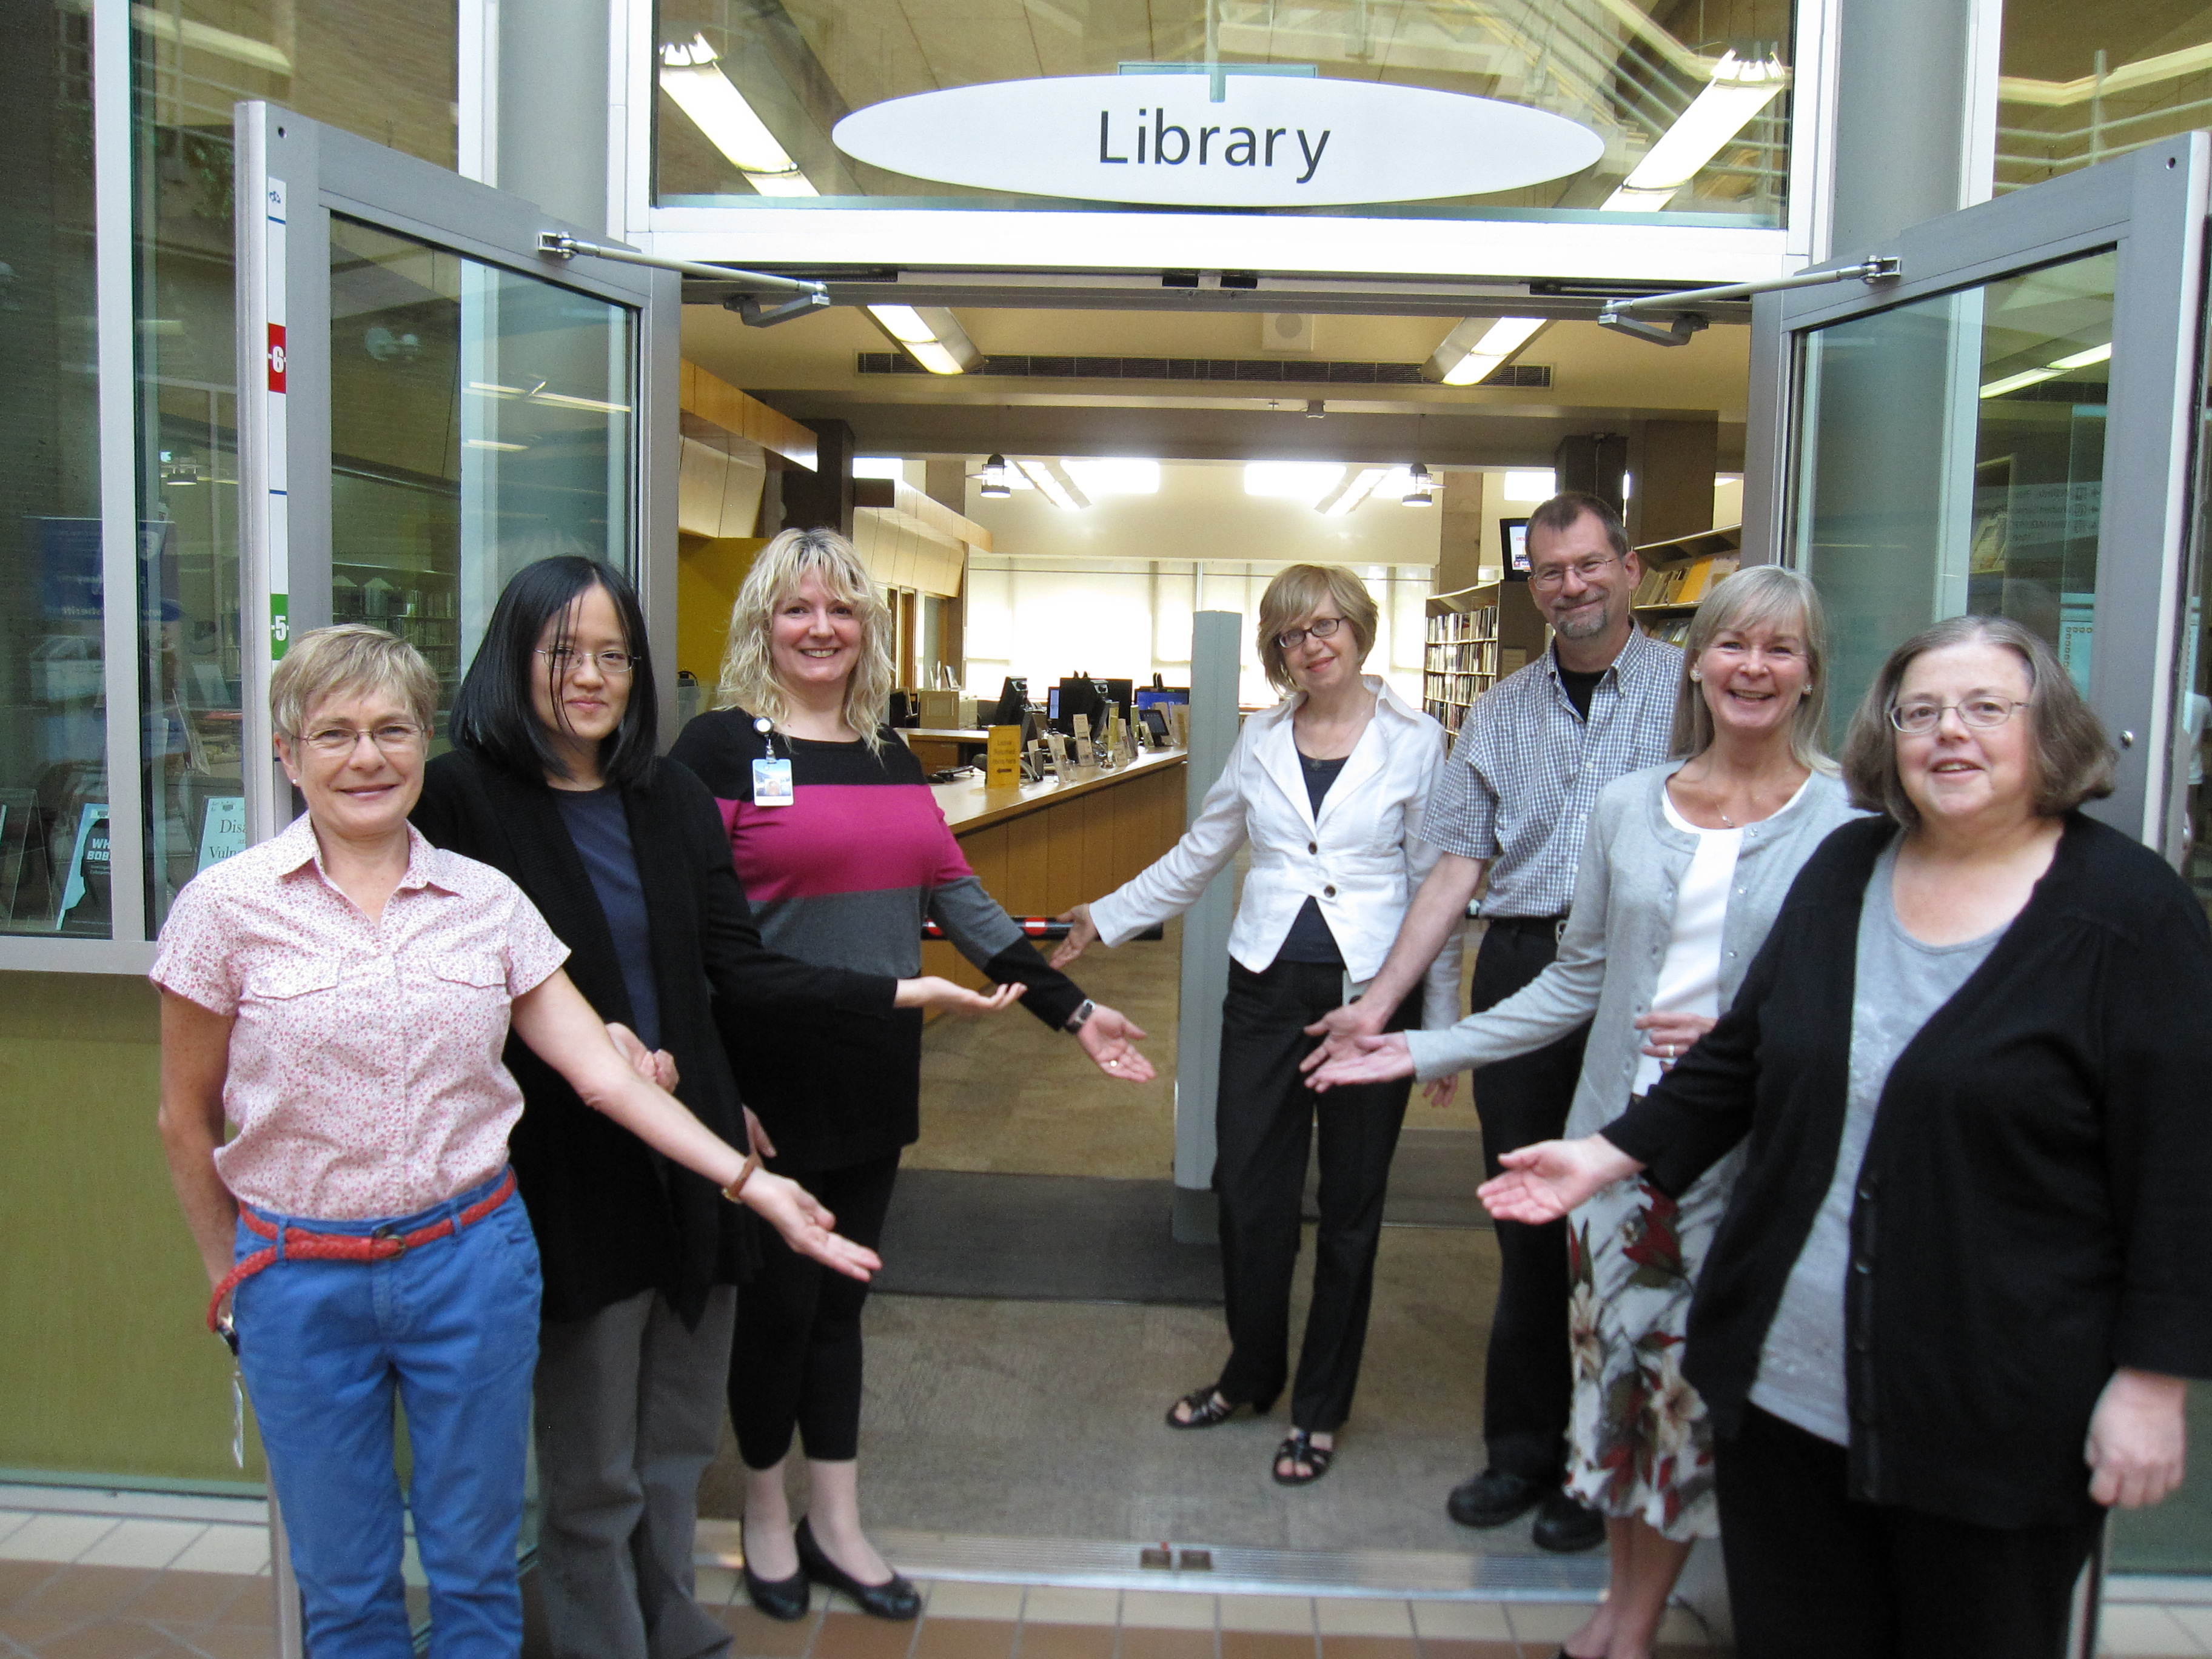 JIBC Library's picture